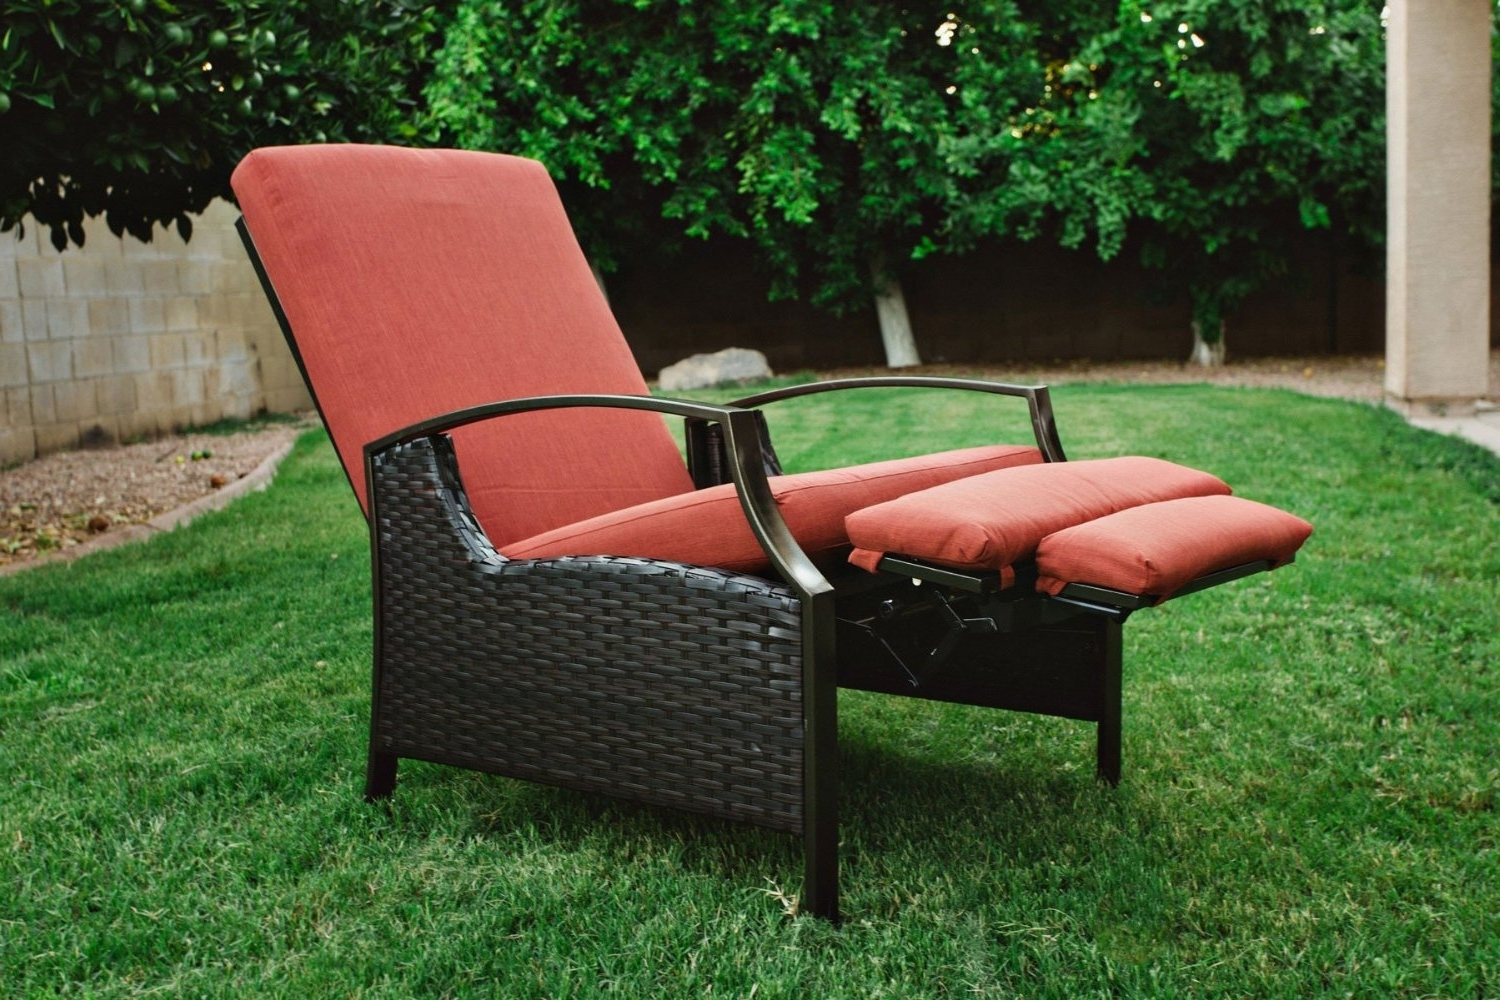 Best Value Outdoor Wicker Recliners – The Best Recliner Throughout Most Recently Released Adjustable Pool Chaise Lounge Chair Recliners (View 14 of 15)